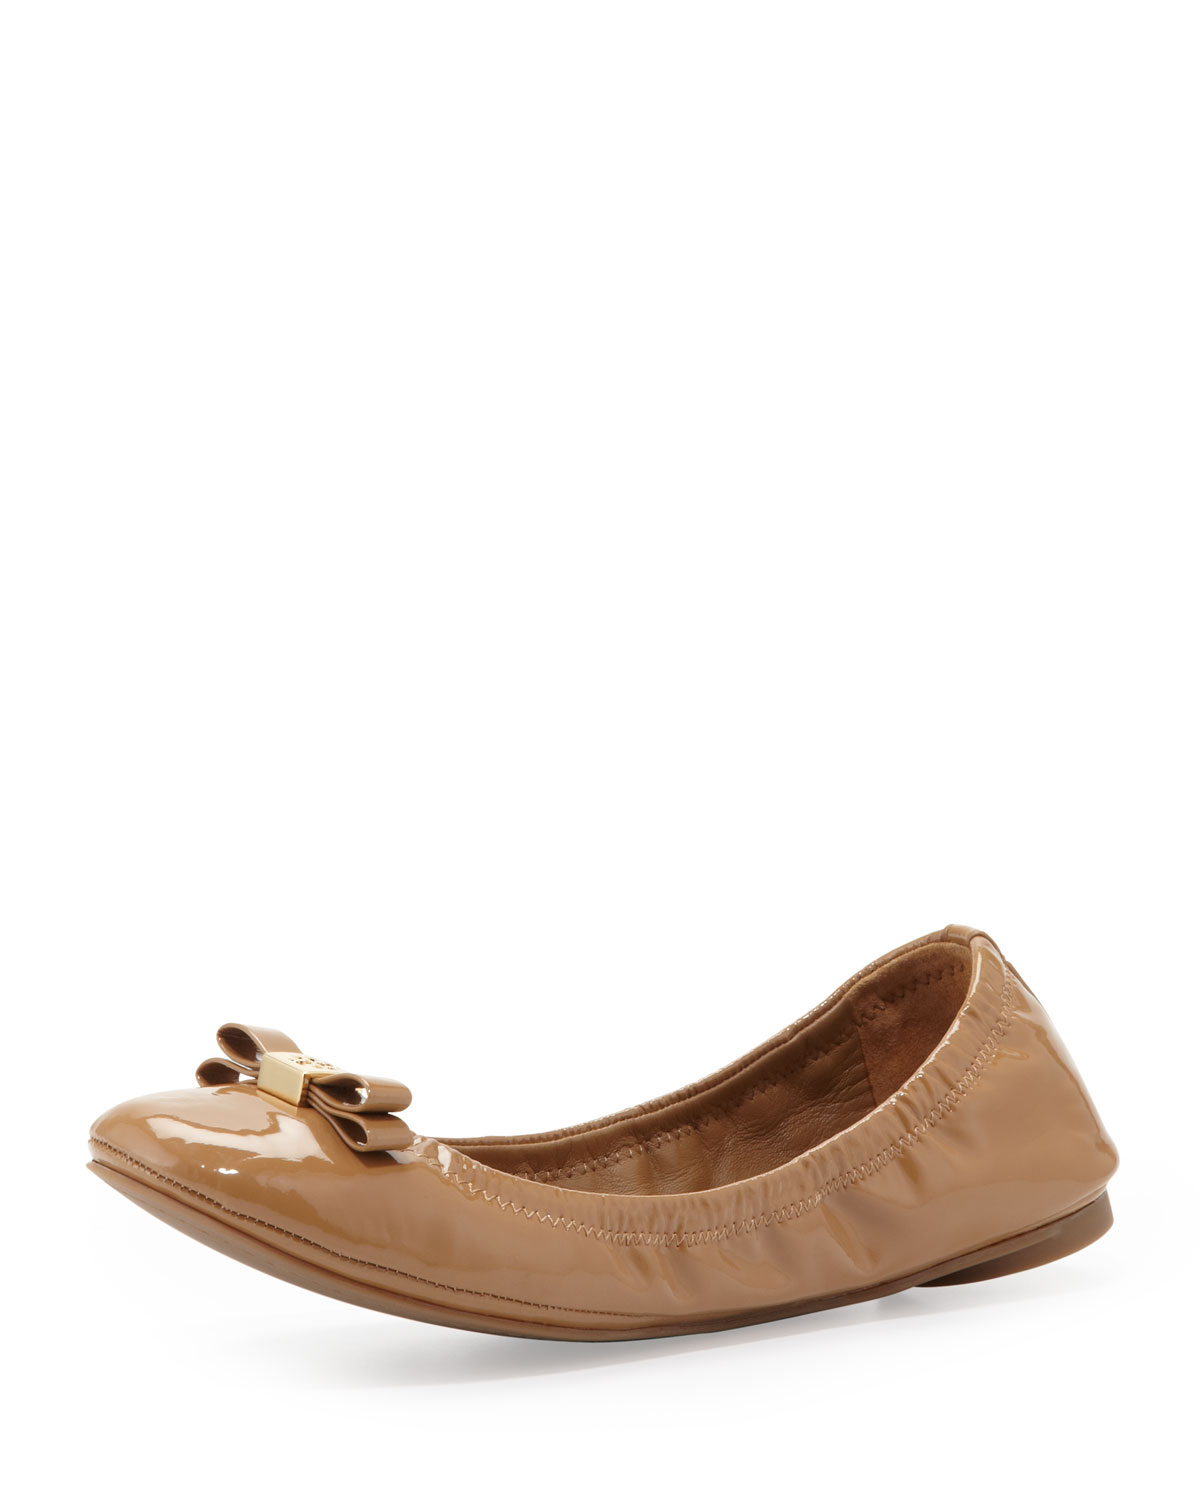 tory burch eddie 2 patent bow ballerina flat sand in brown sand lyst. Black Bedroom Furniture Sets. Home Design Ideas